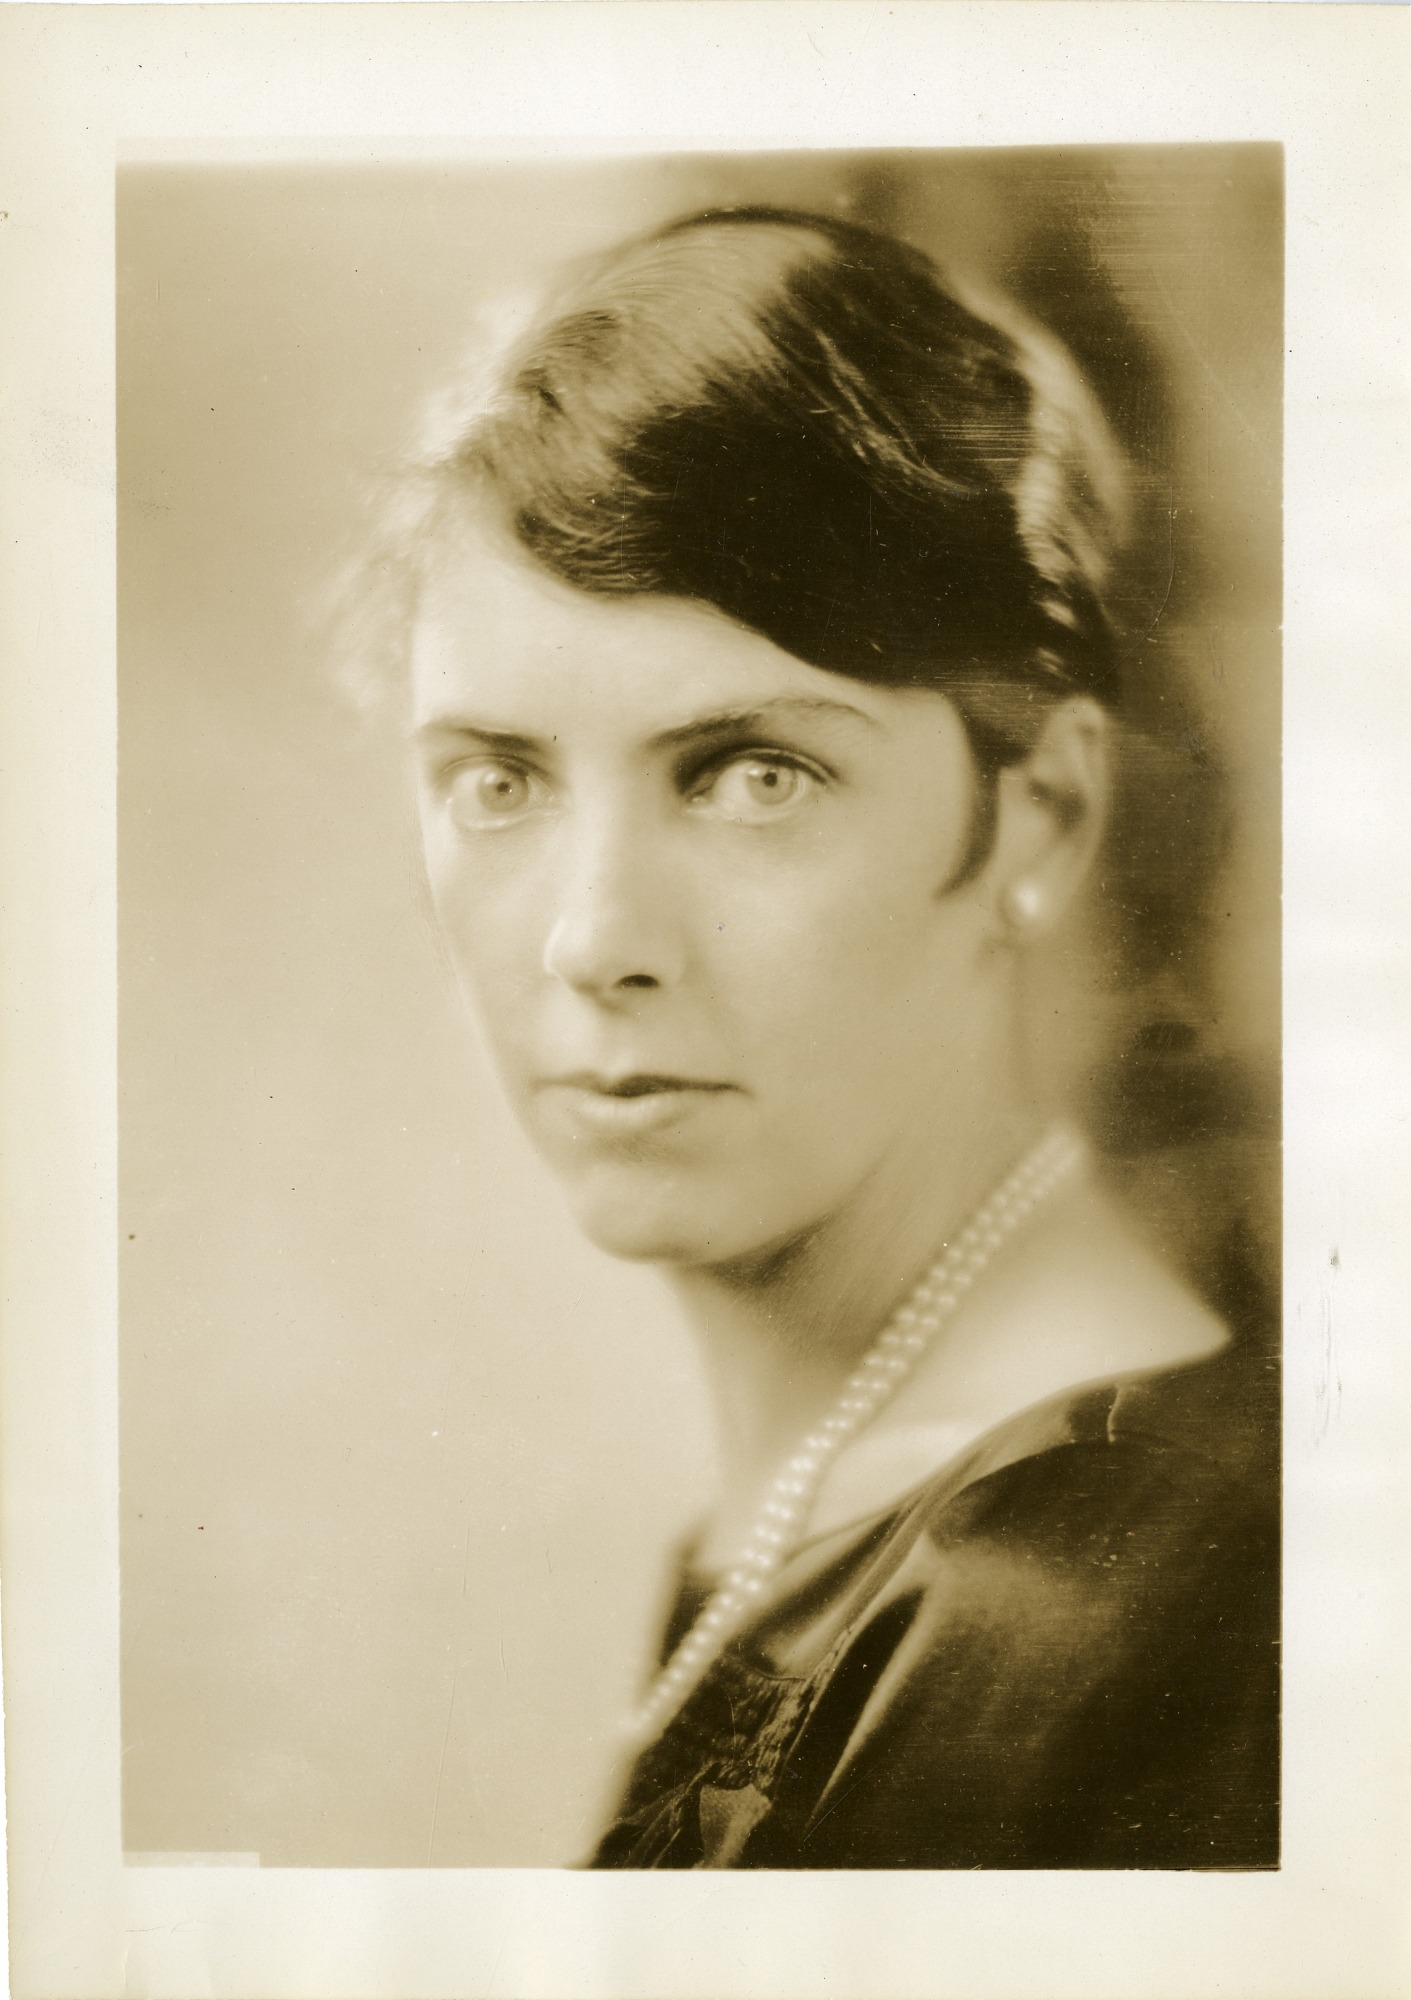 Jane Stafford (1899-1991), Smithsonian Institution Archives, SIA Acc. 90-105 [SIA2009-0886].